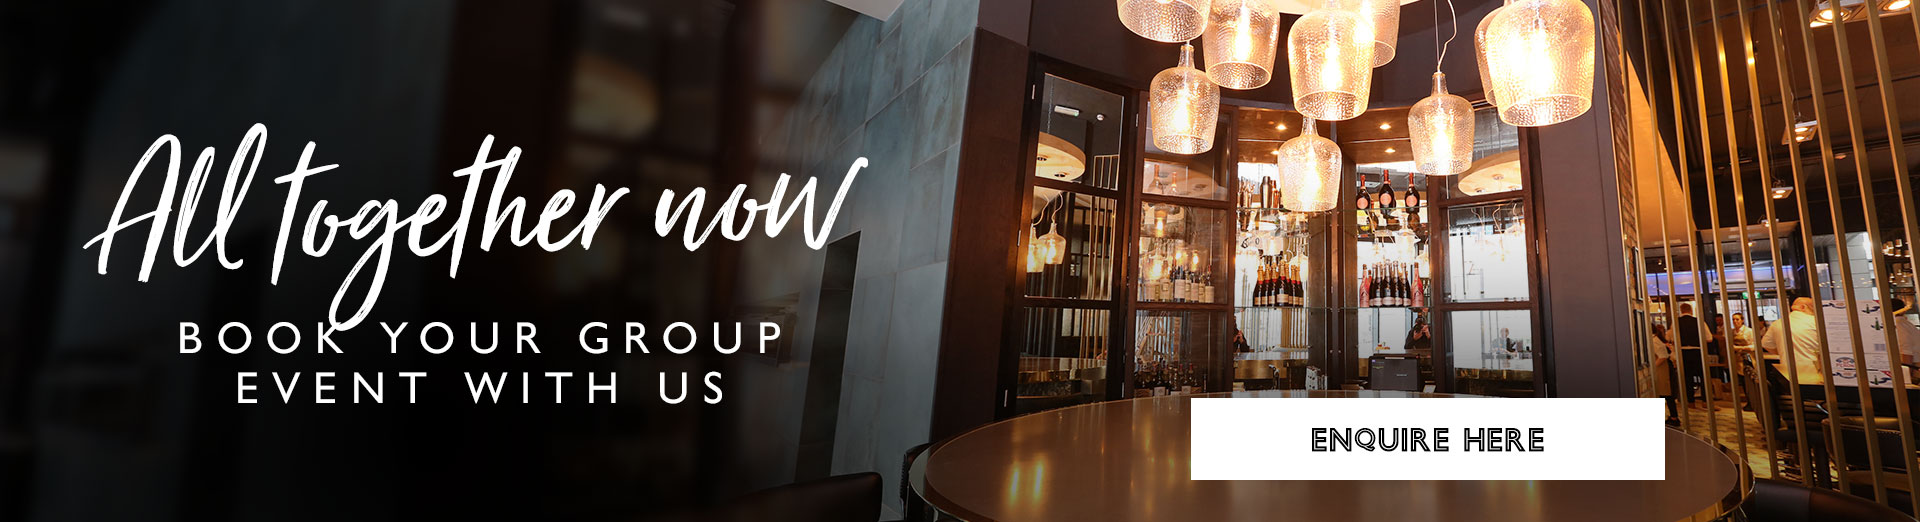 Group Bookings at All Bar One Newhall Street Birmingham